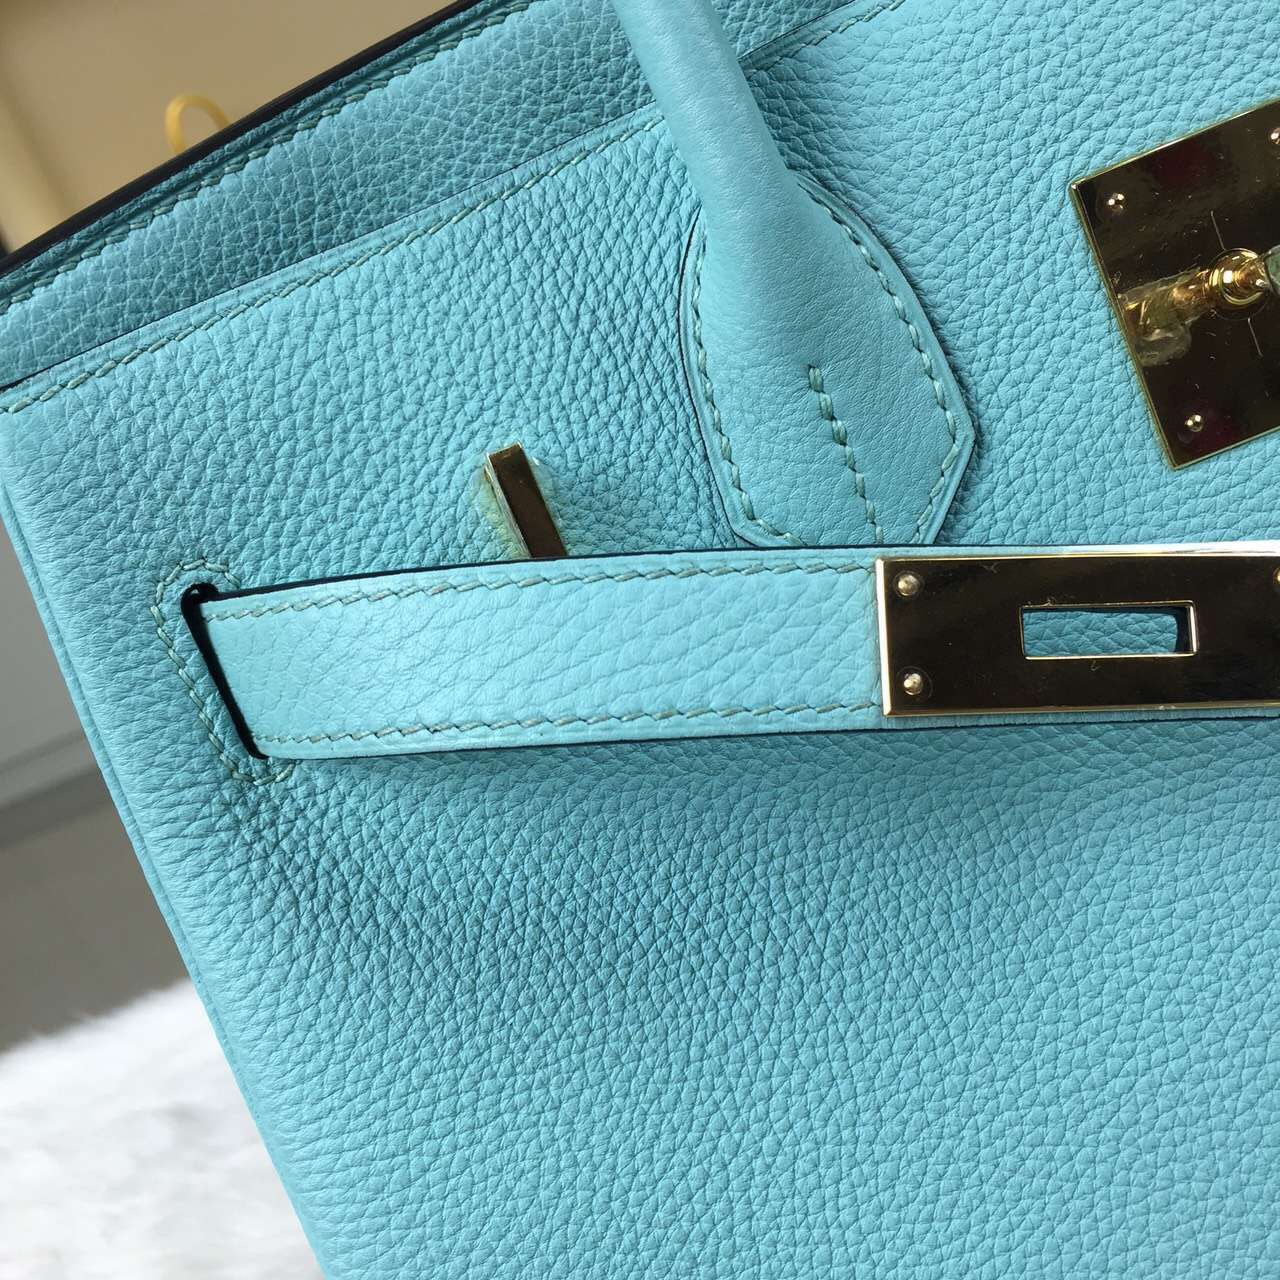 Vip Customized Hermes Togo Leather Birkin Bag 30CM in 3P Lagon Blue